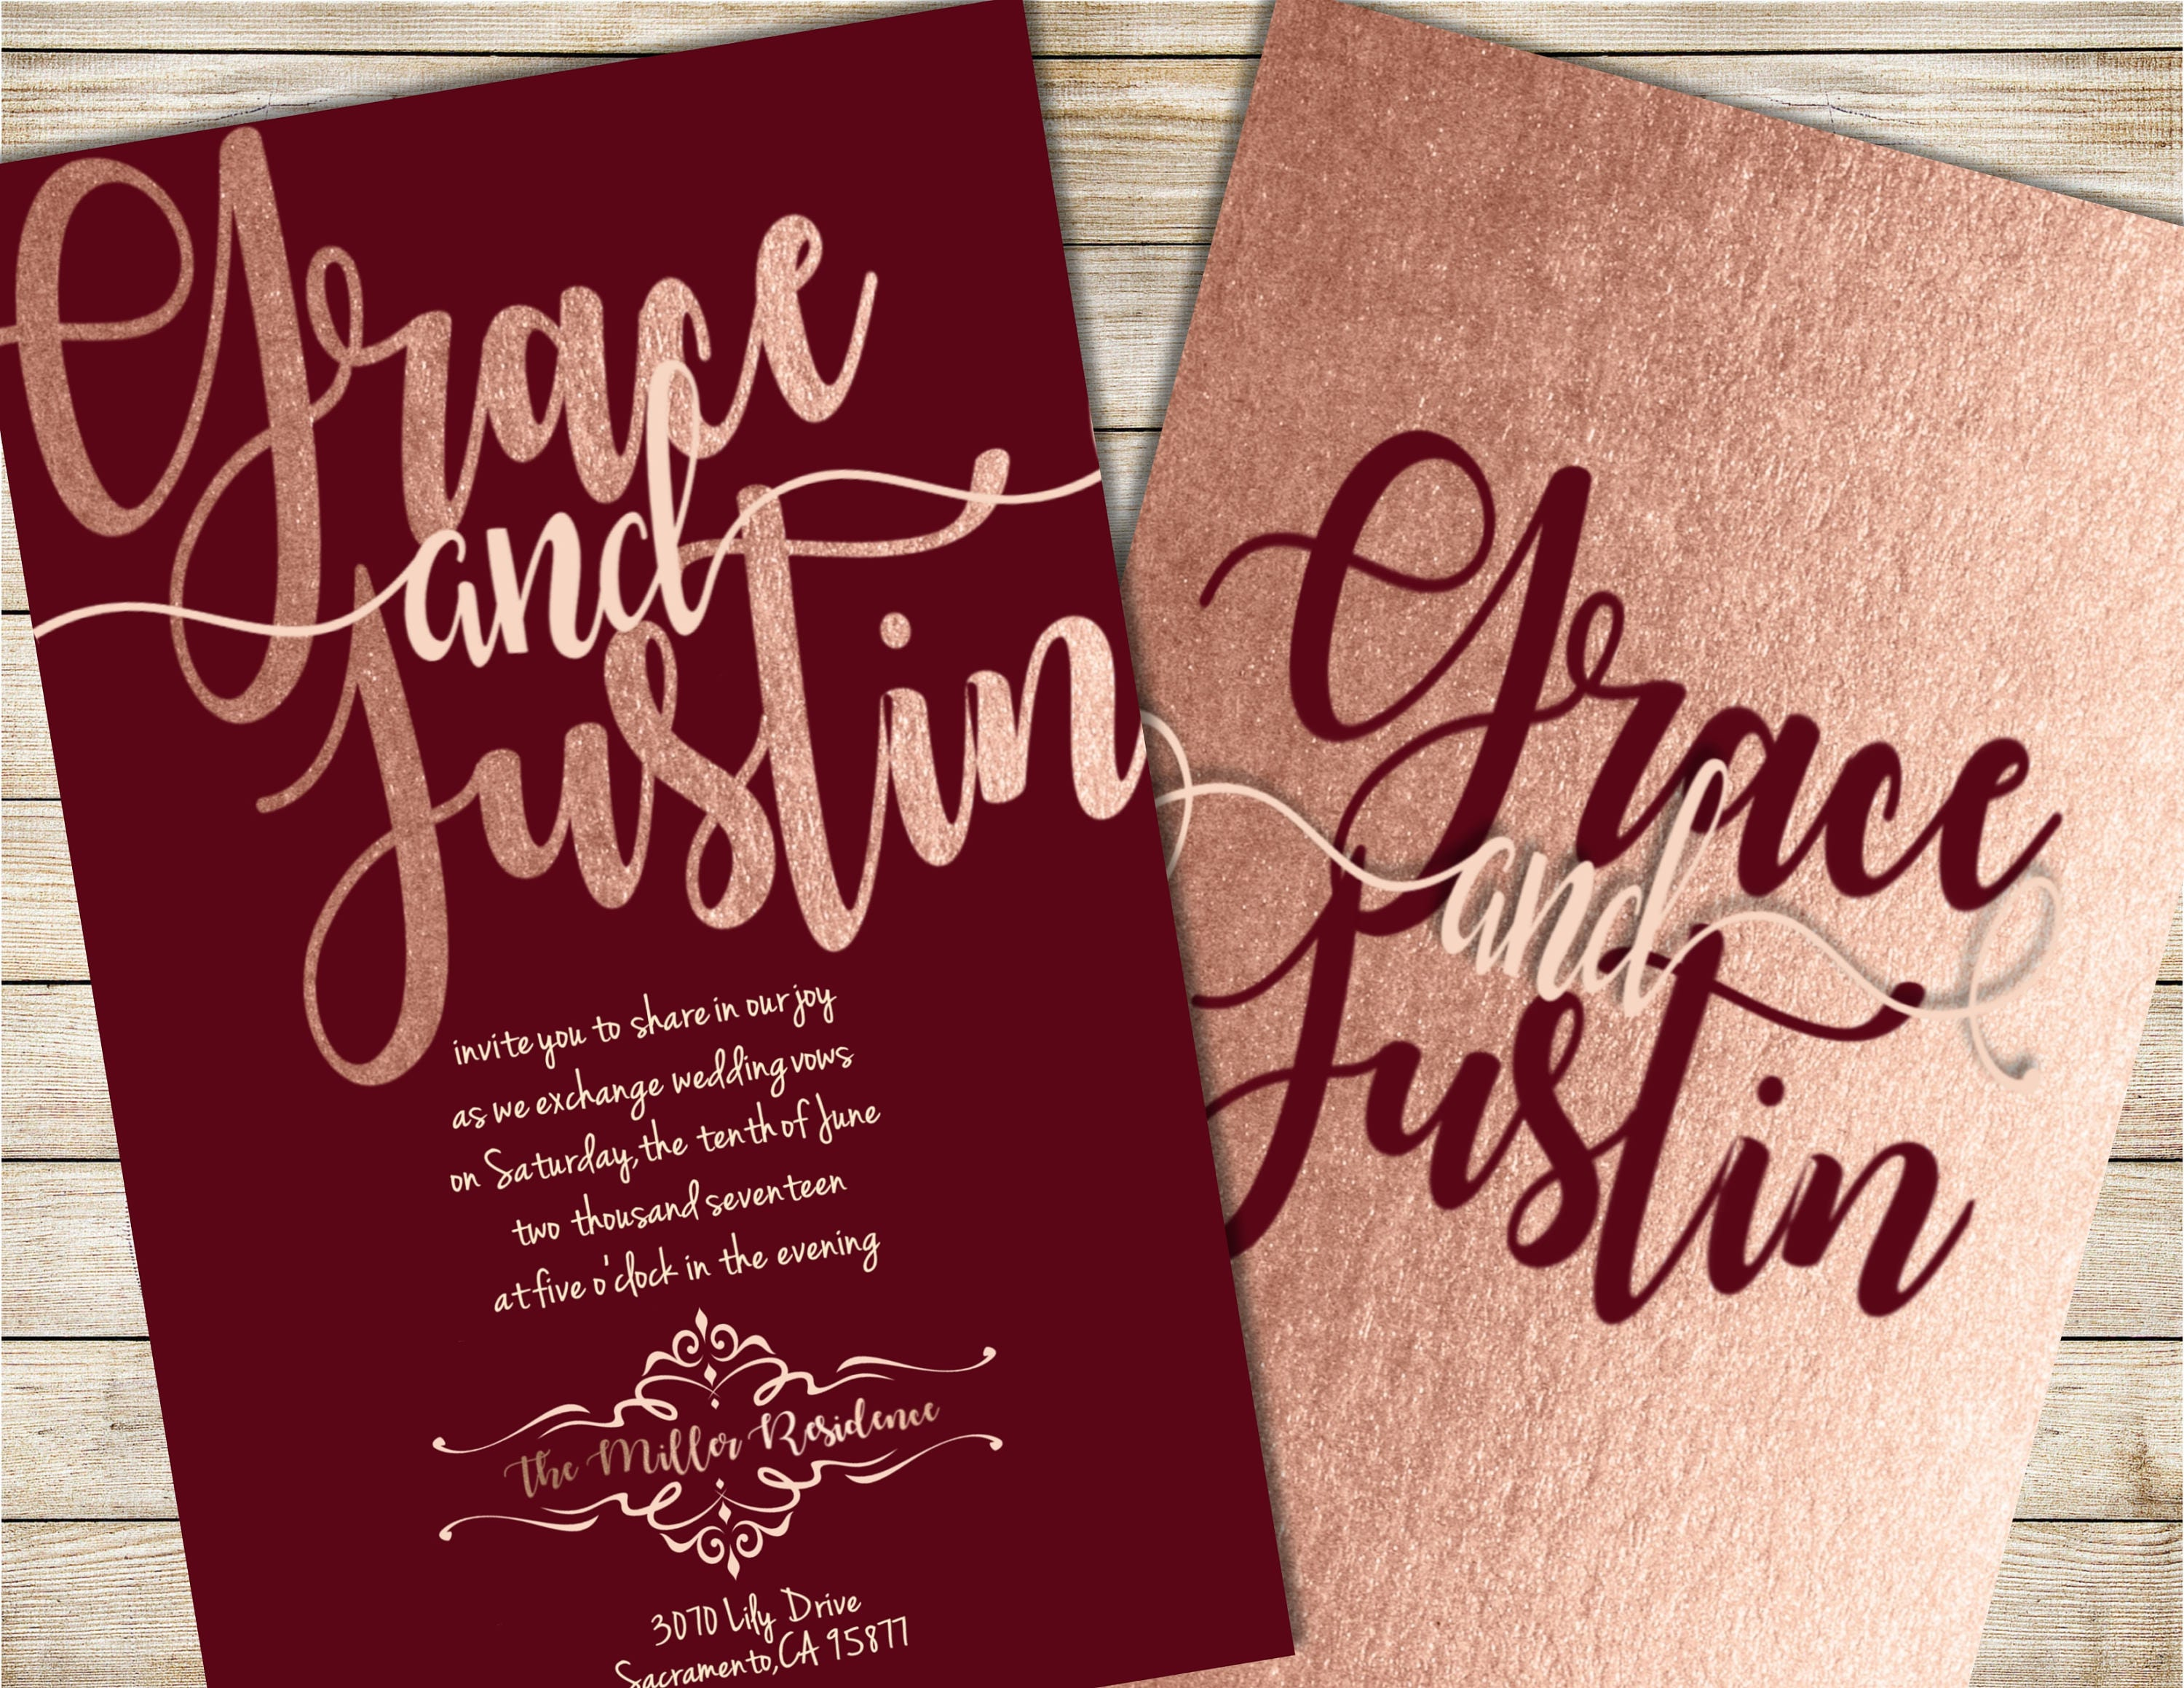 Burgundy and Blush Wedding Invitation Burgundy Wedding | Etsy